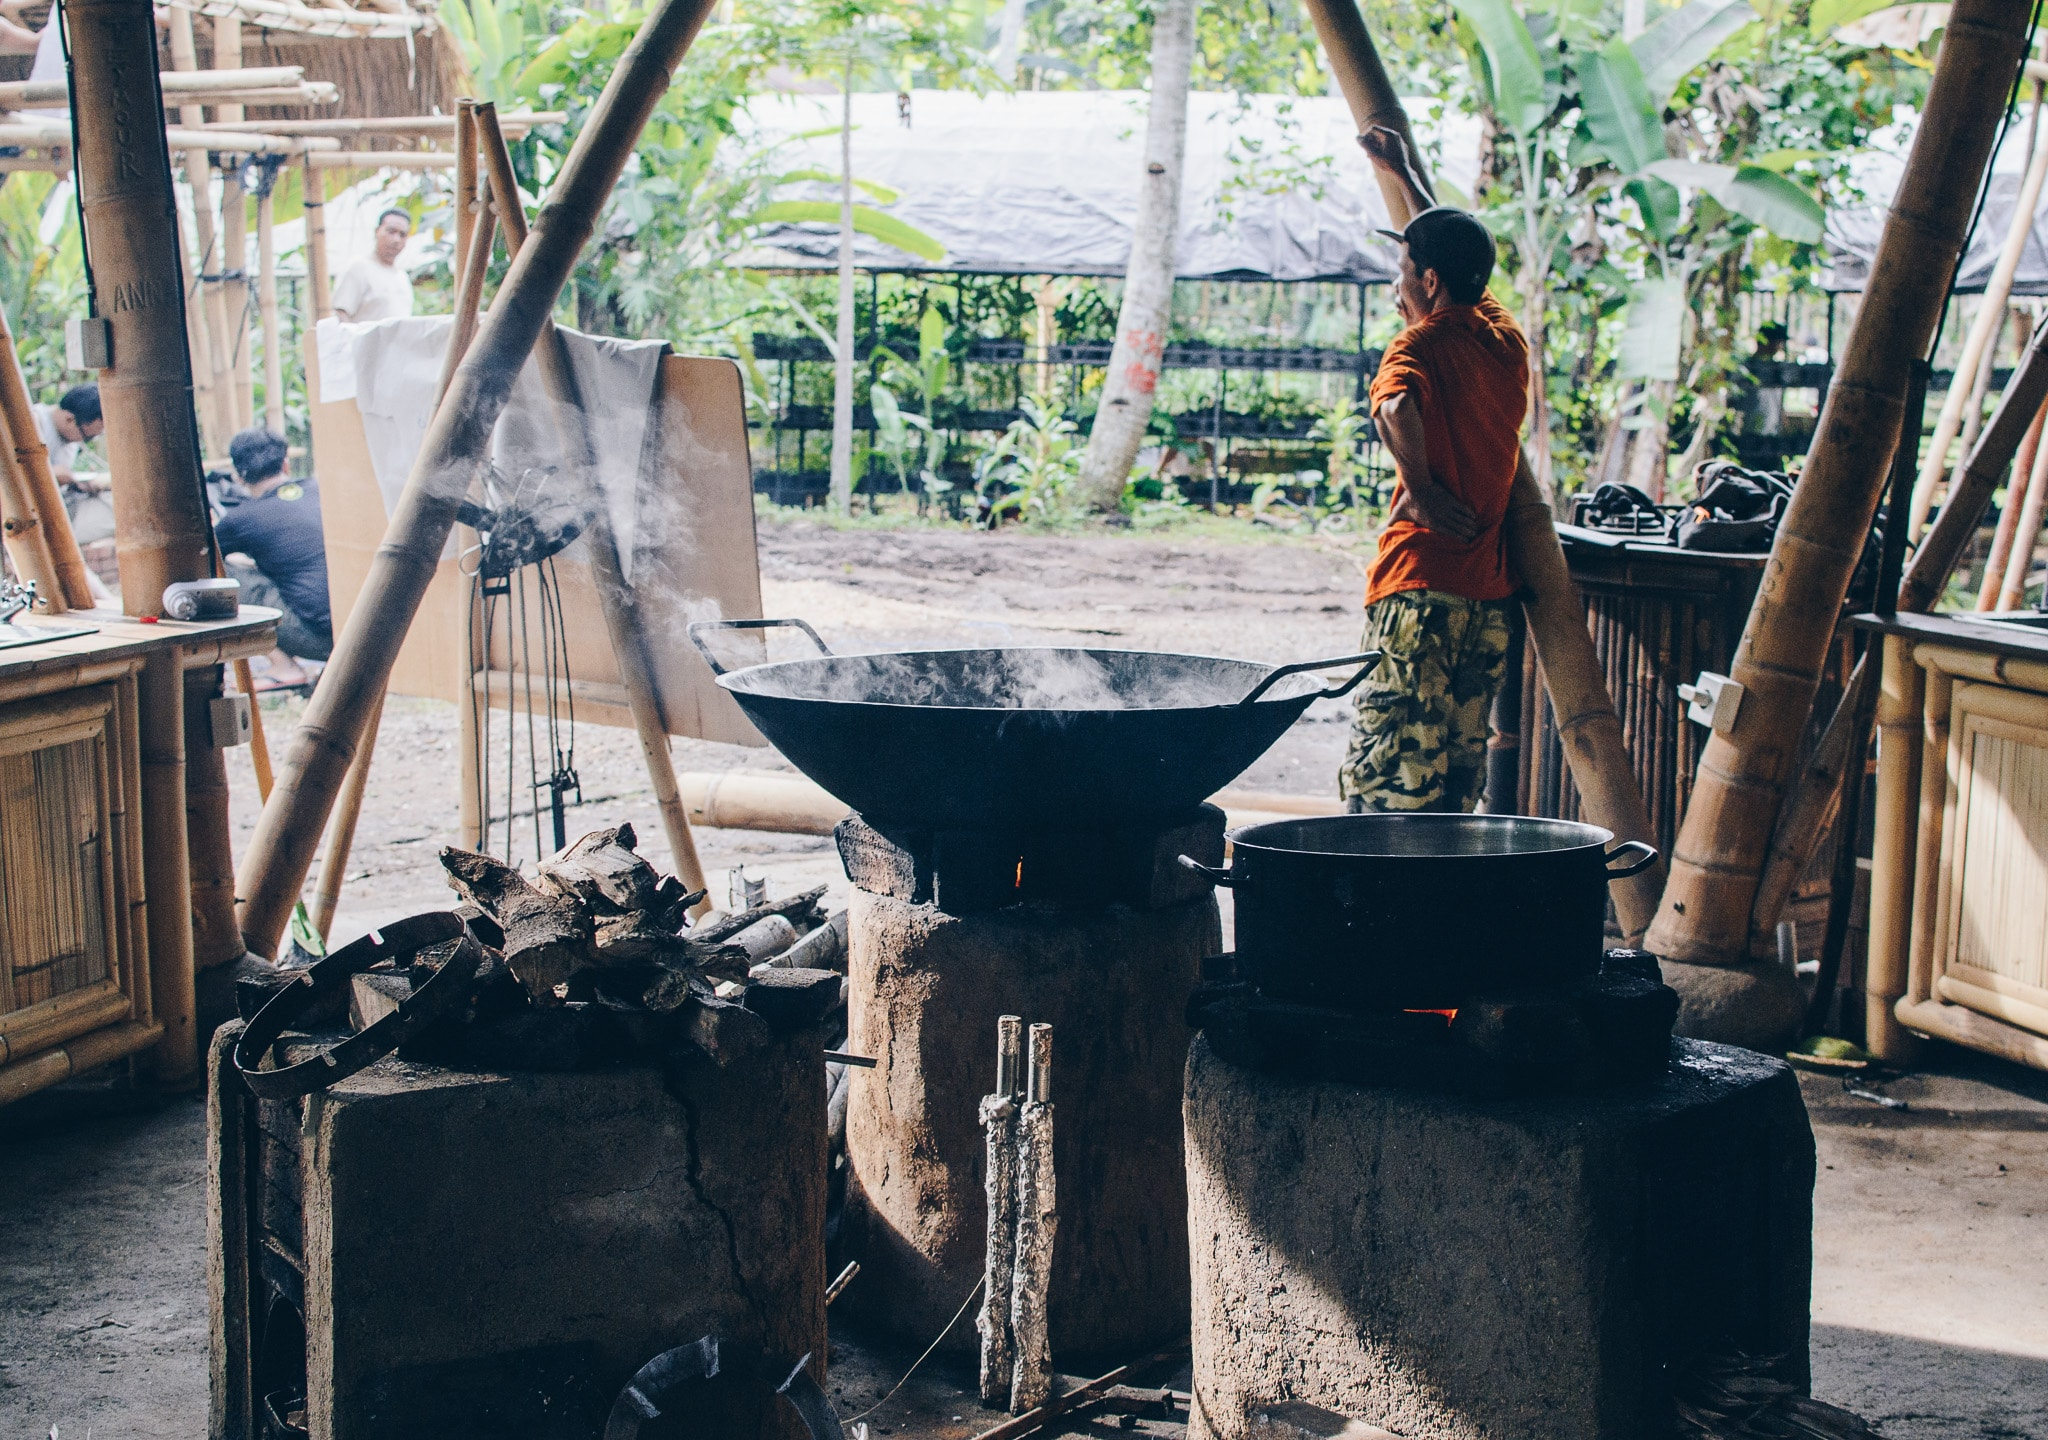 Cooking coconut sugar by Suzi Mifsud